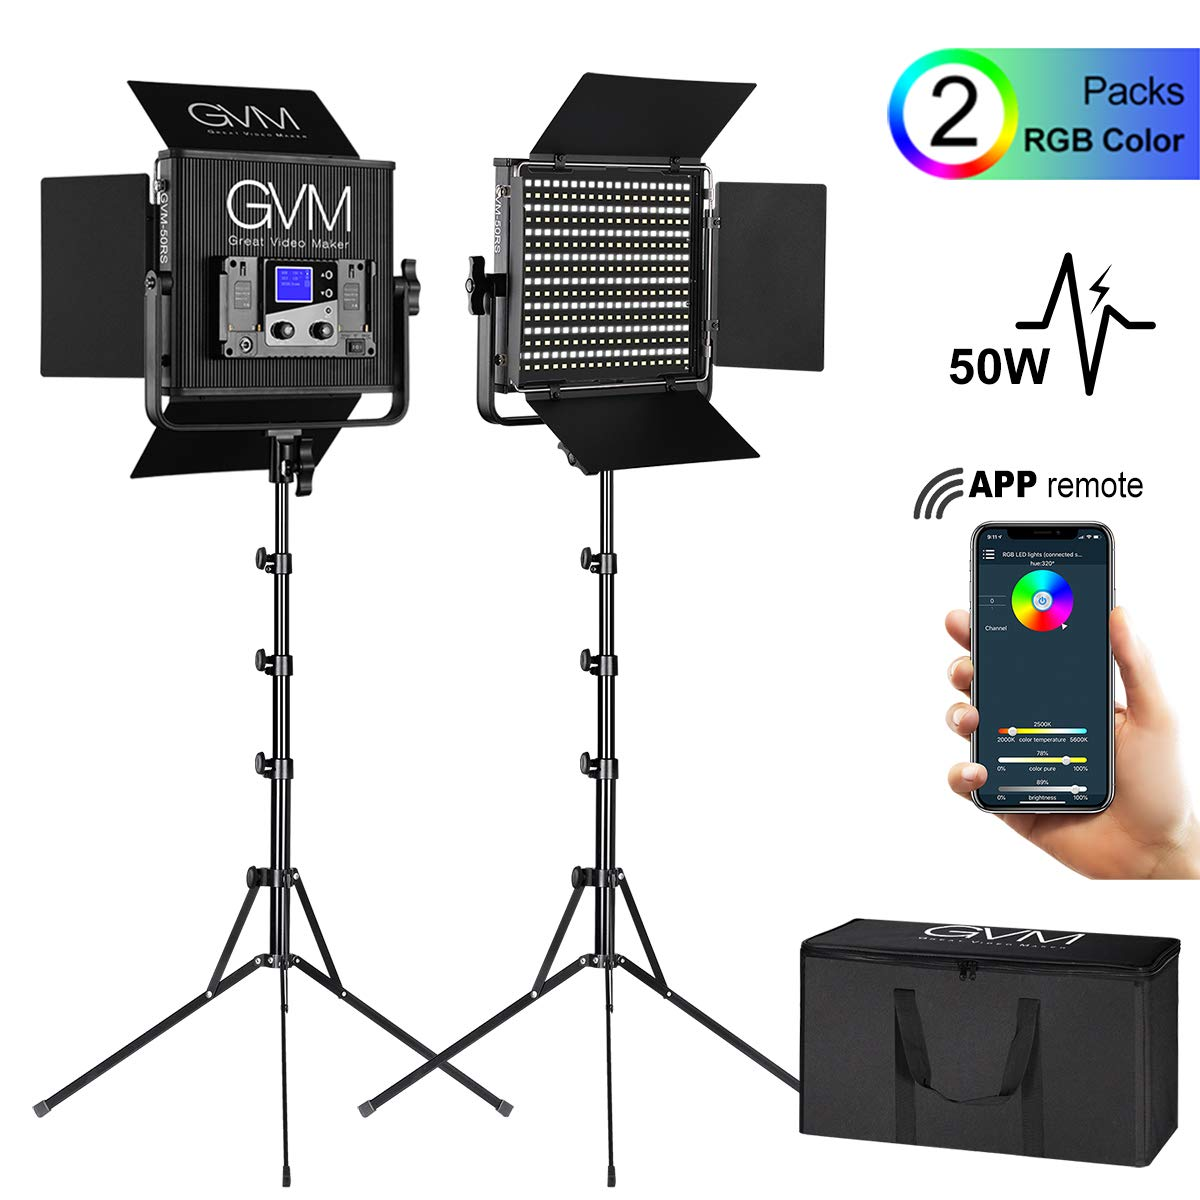 GVM 50RS RGB Video Lighting Kits with APP Control, 2 Pack CRI 97+ Dimmable Bi-Color/Full Color Output LED Photography Lights Panel with Barn-Door, Lighting for YouTube Studio Video Camera, 3200K-5600K by GVM Great Video Maker